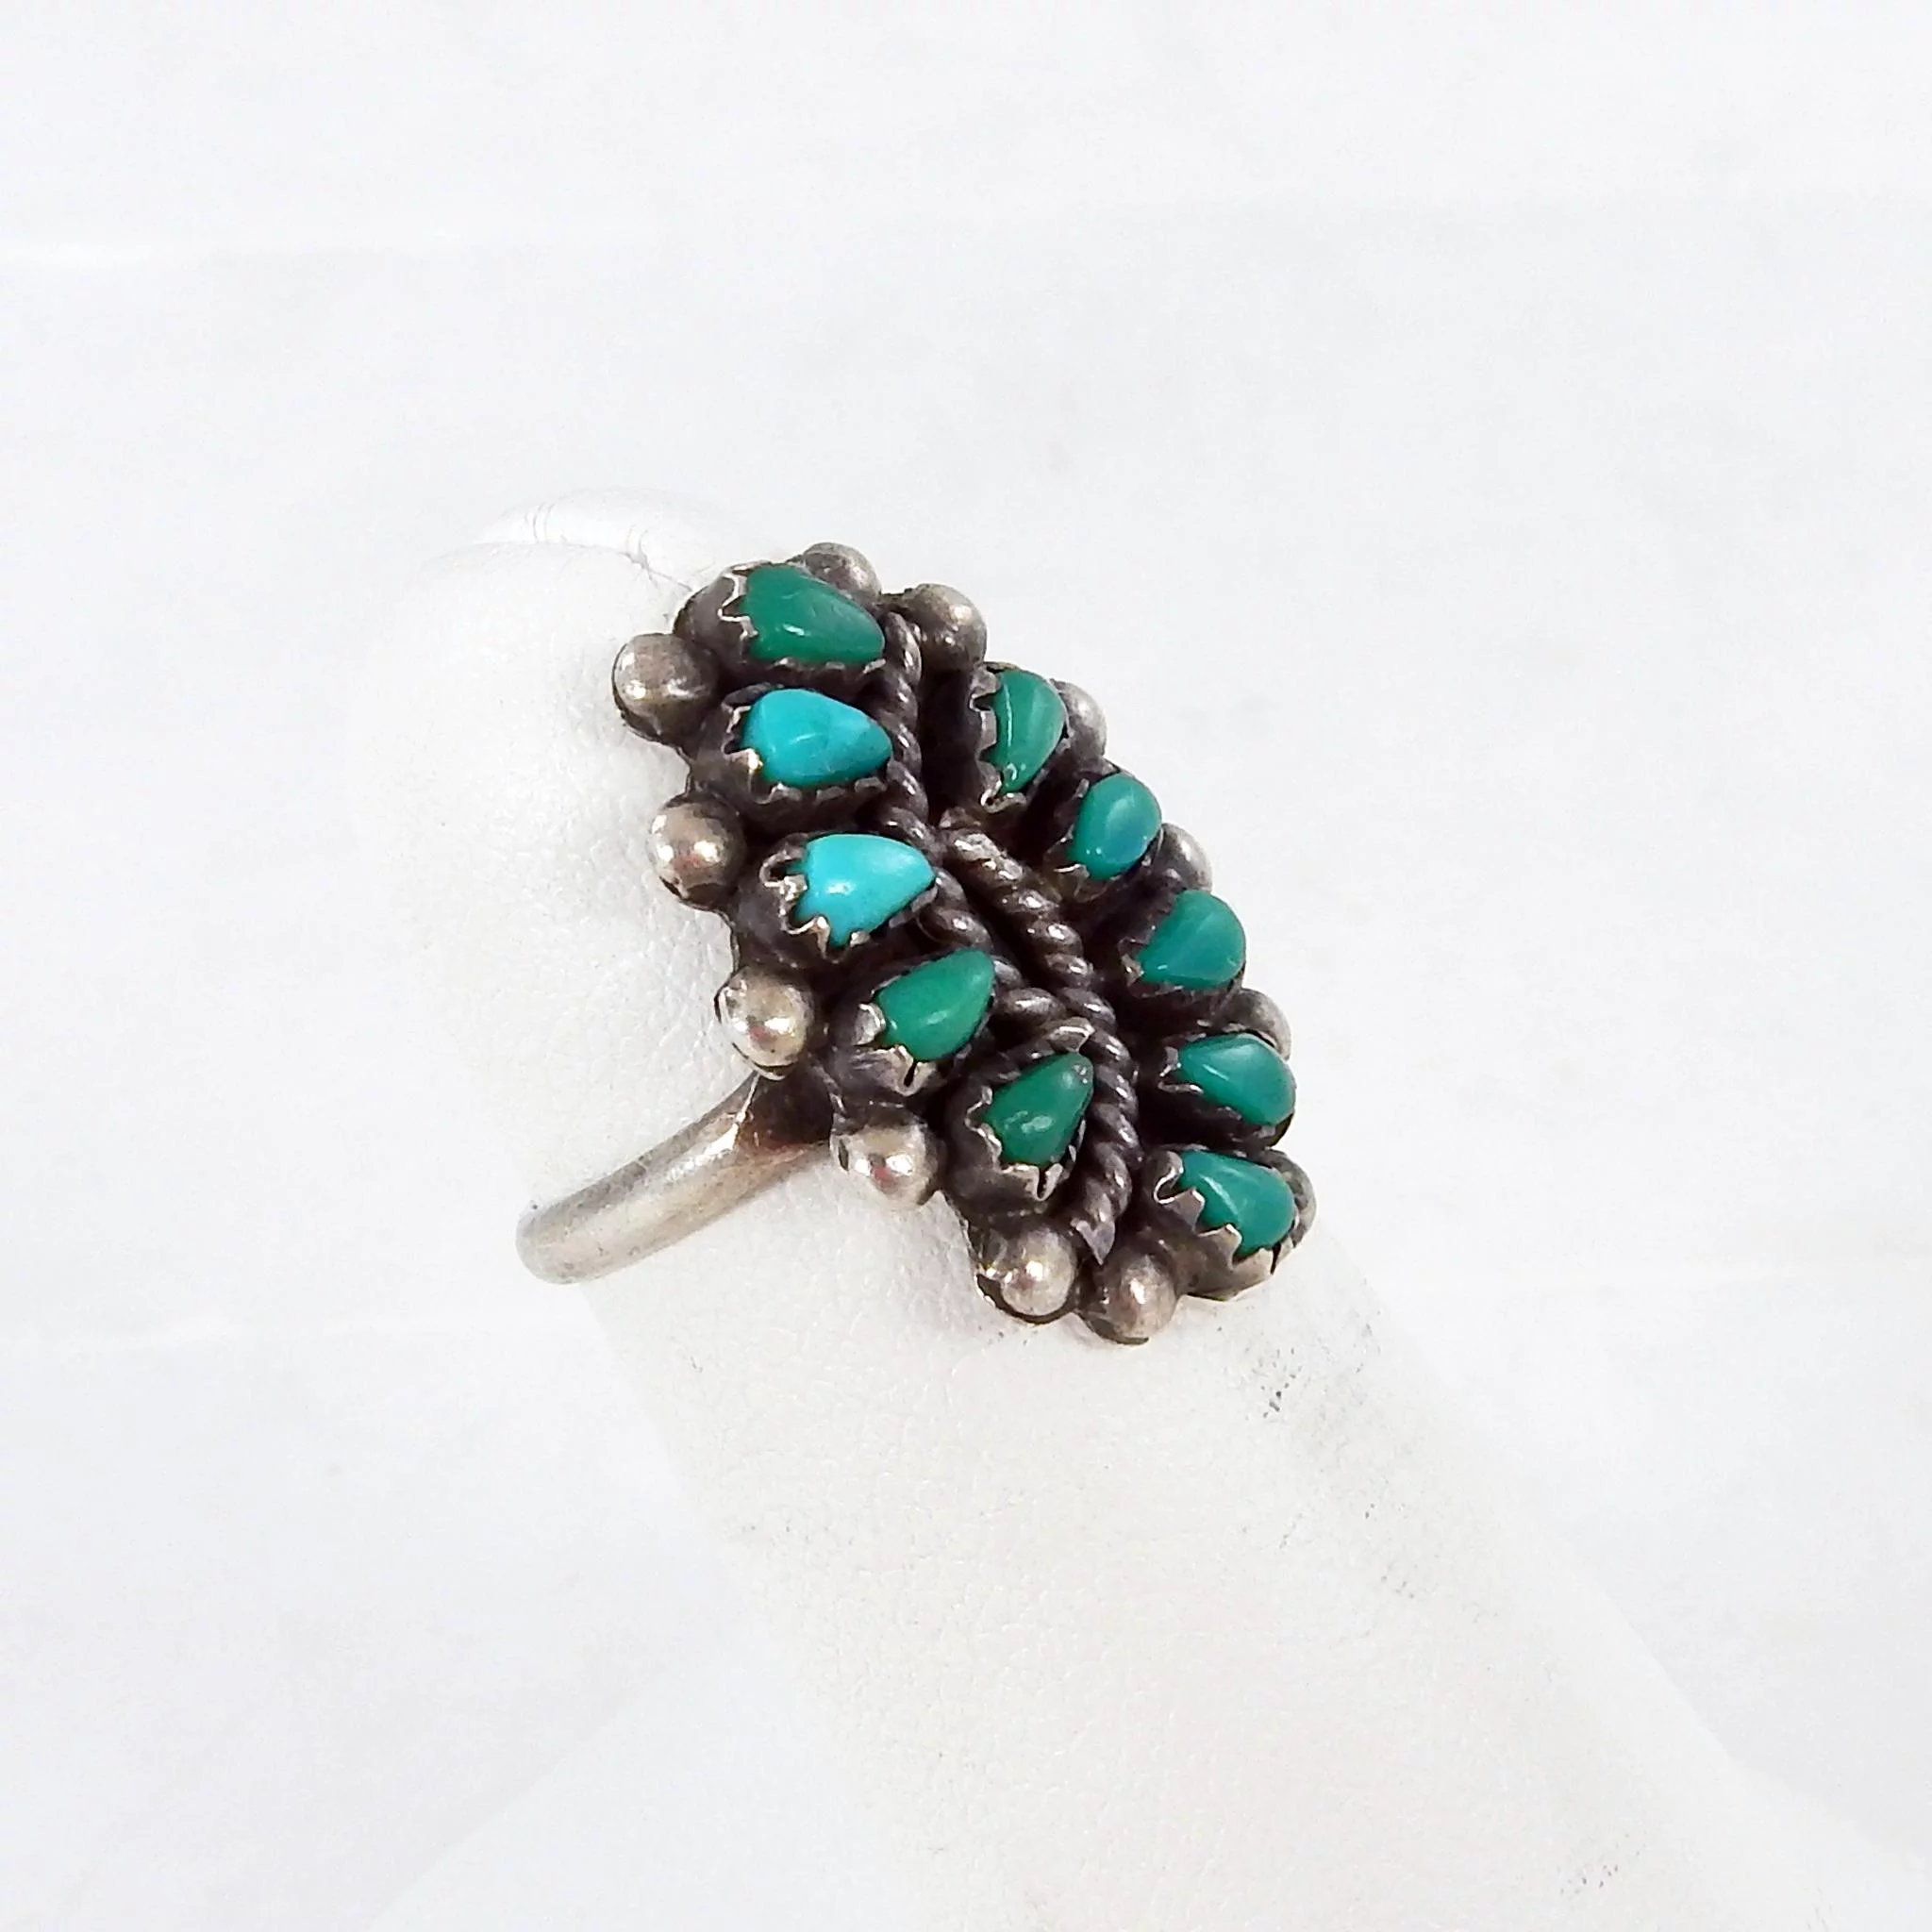 71765162677d3 Zuni - Sharon Hustito Sterling and Turquoise Petit Point Ring - C. 1970s